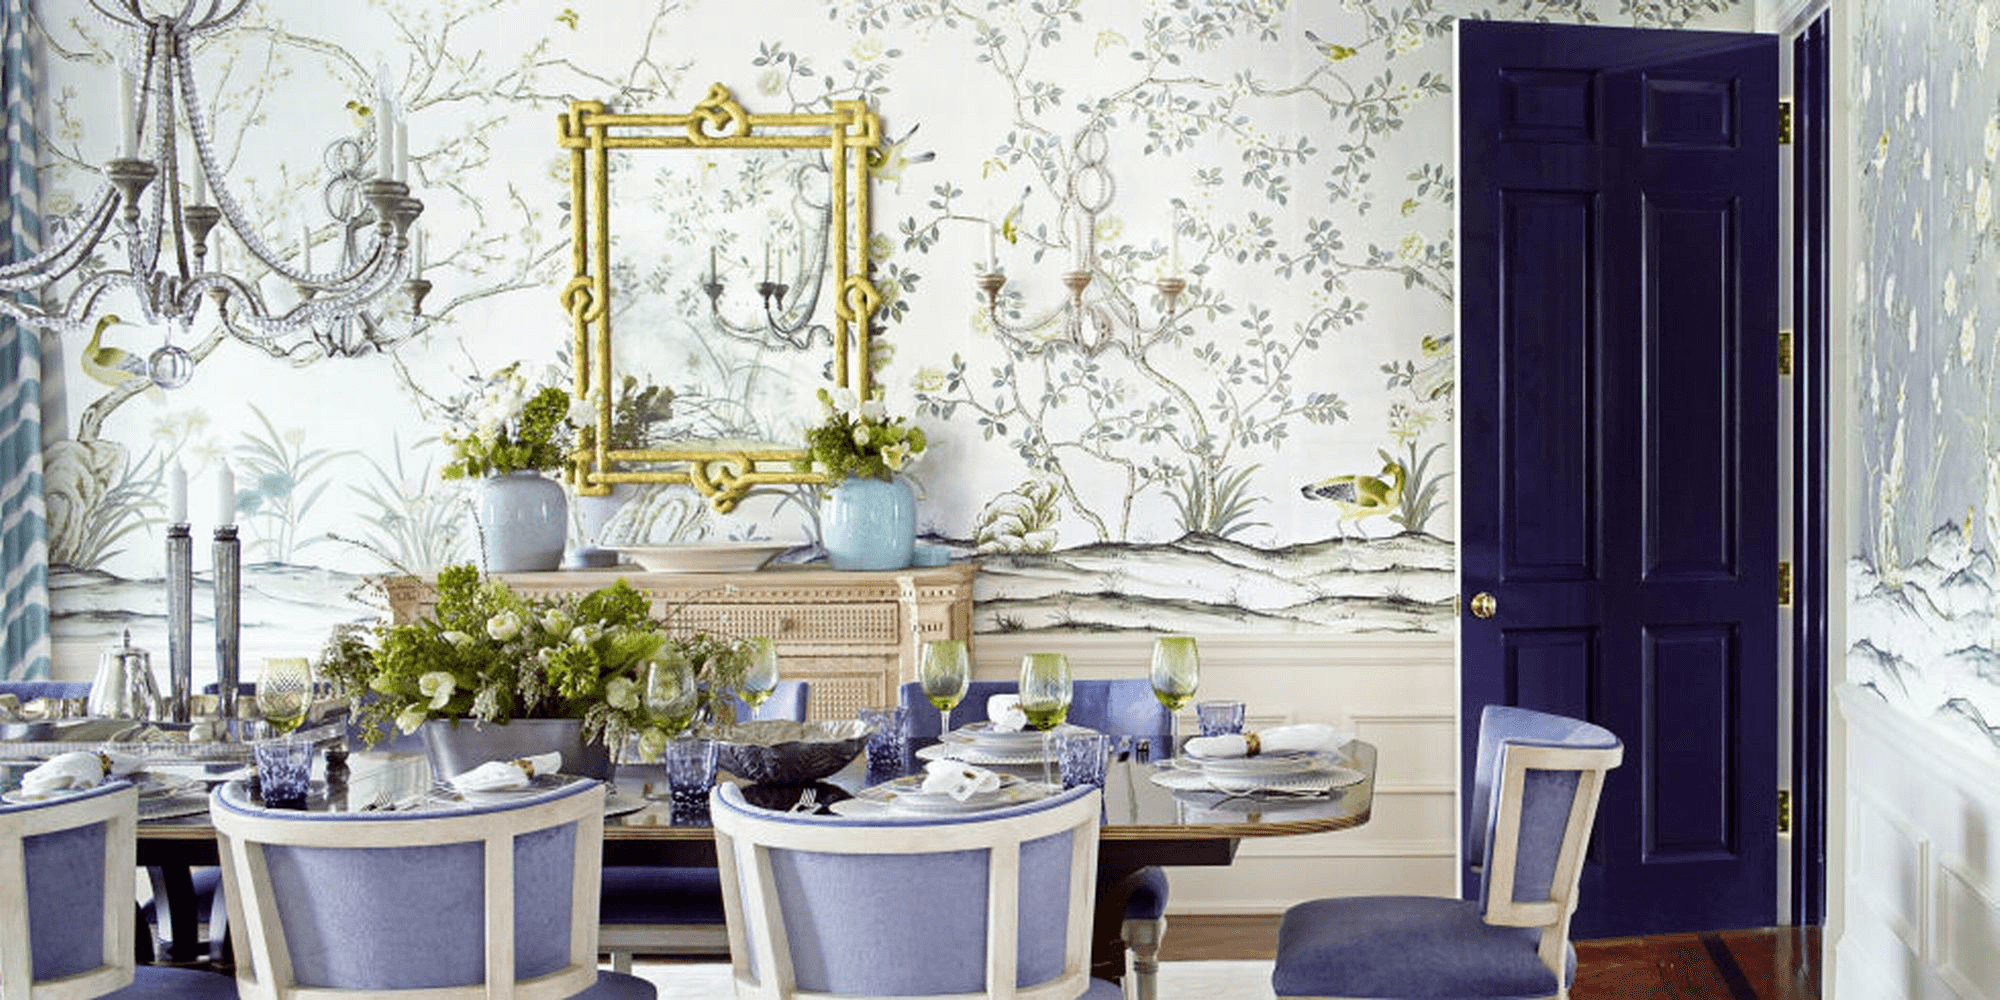 5 Unique Dining Room Wall Decor You Must Have